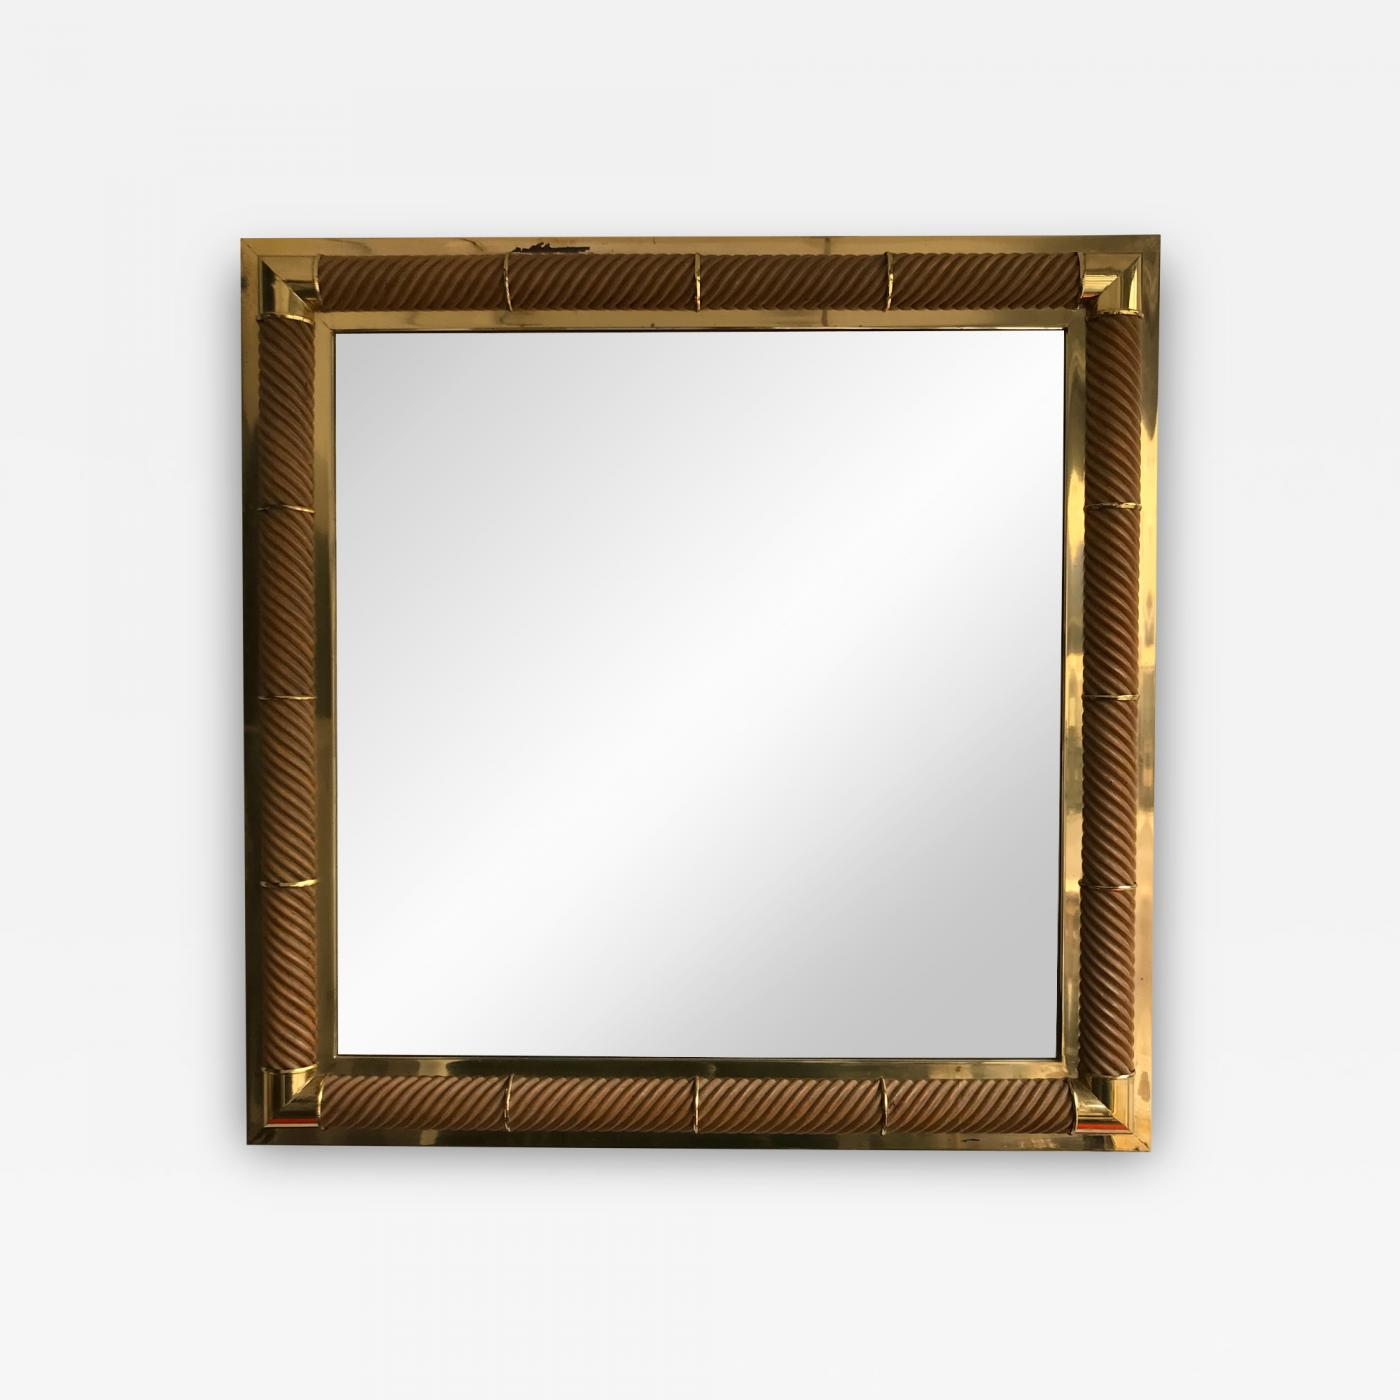 Mirror brass and wood Galerie Maison & Jardin. France, 1970s ...